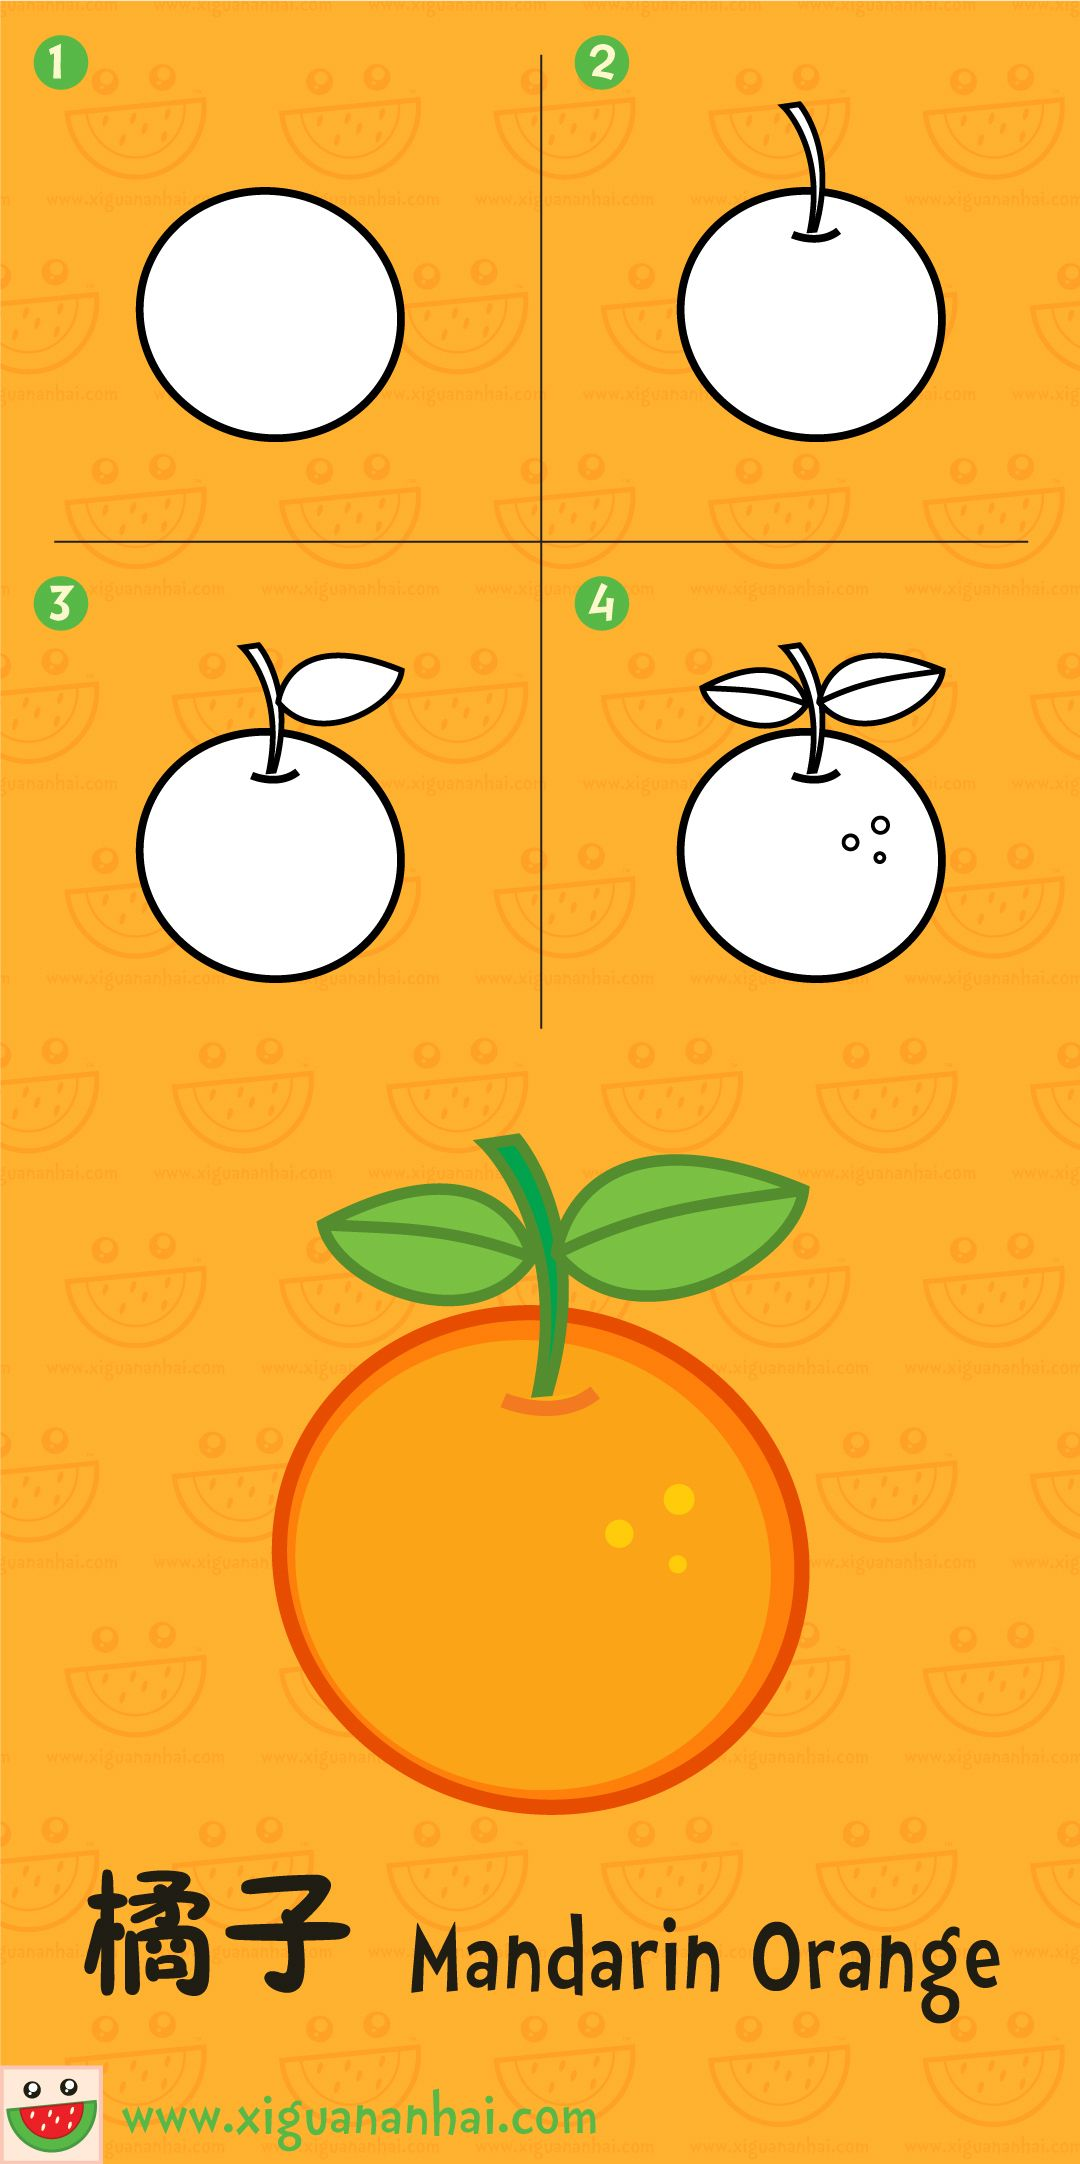 橘子 Mandarin Orange Easy drawings, Food drawing, Drawings